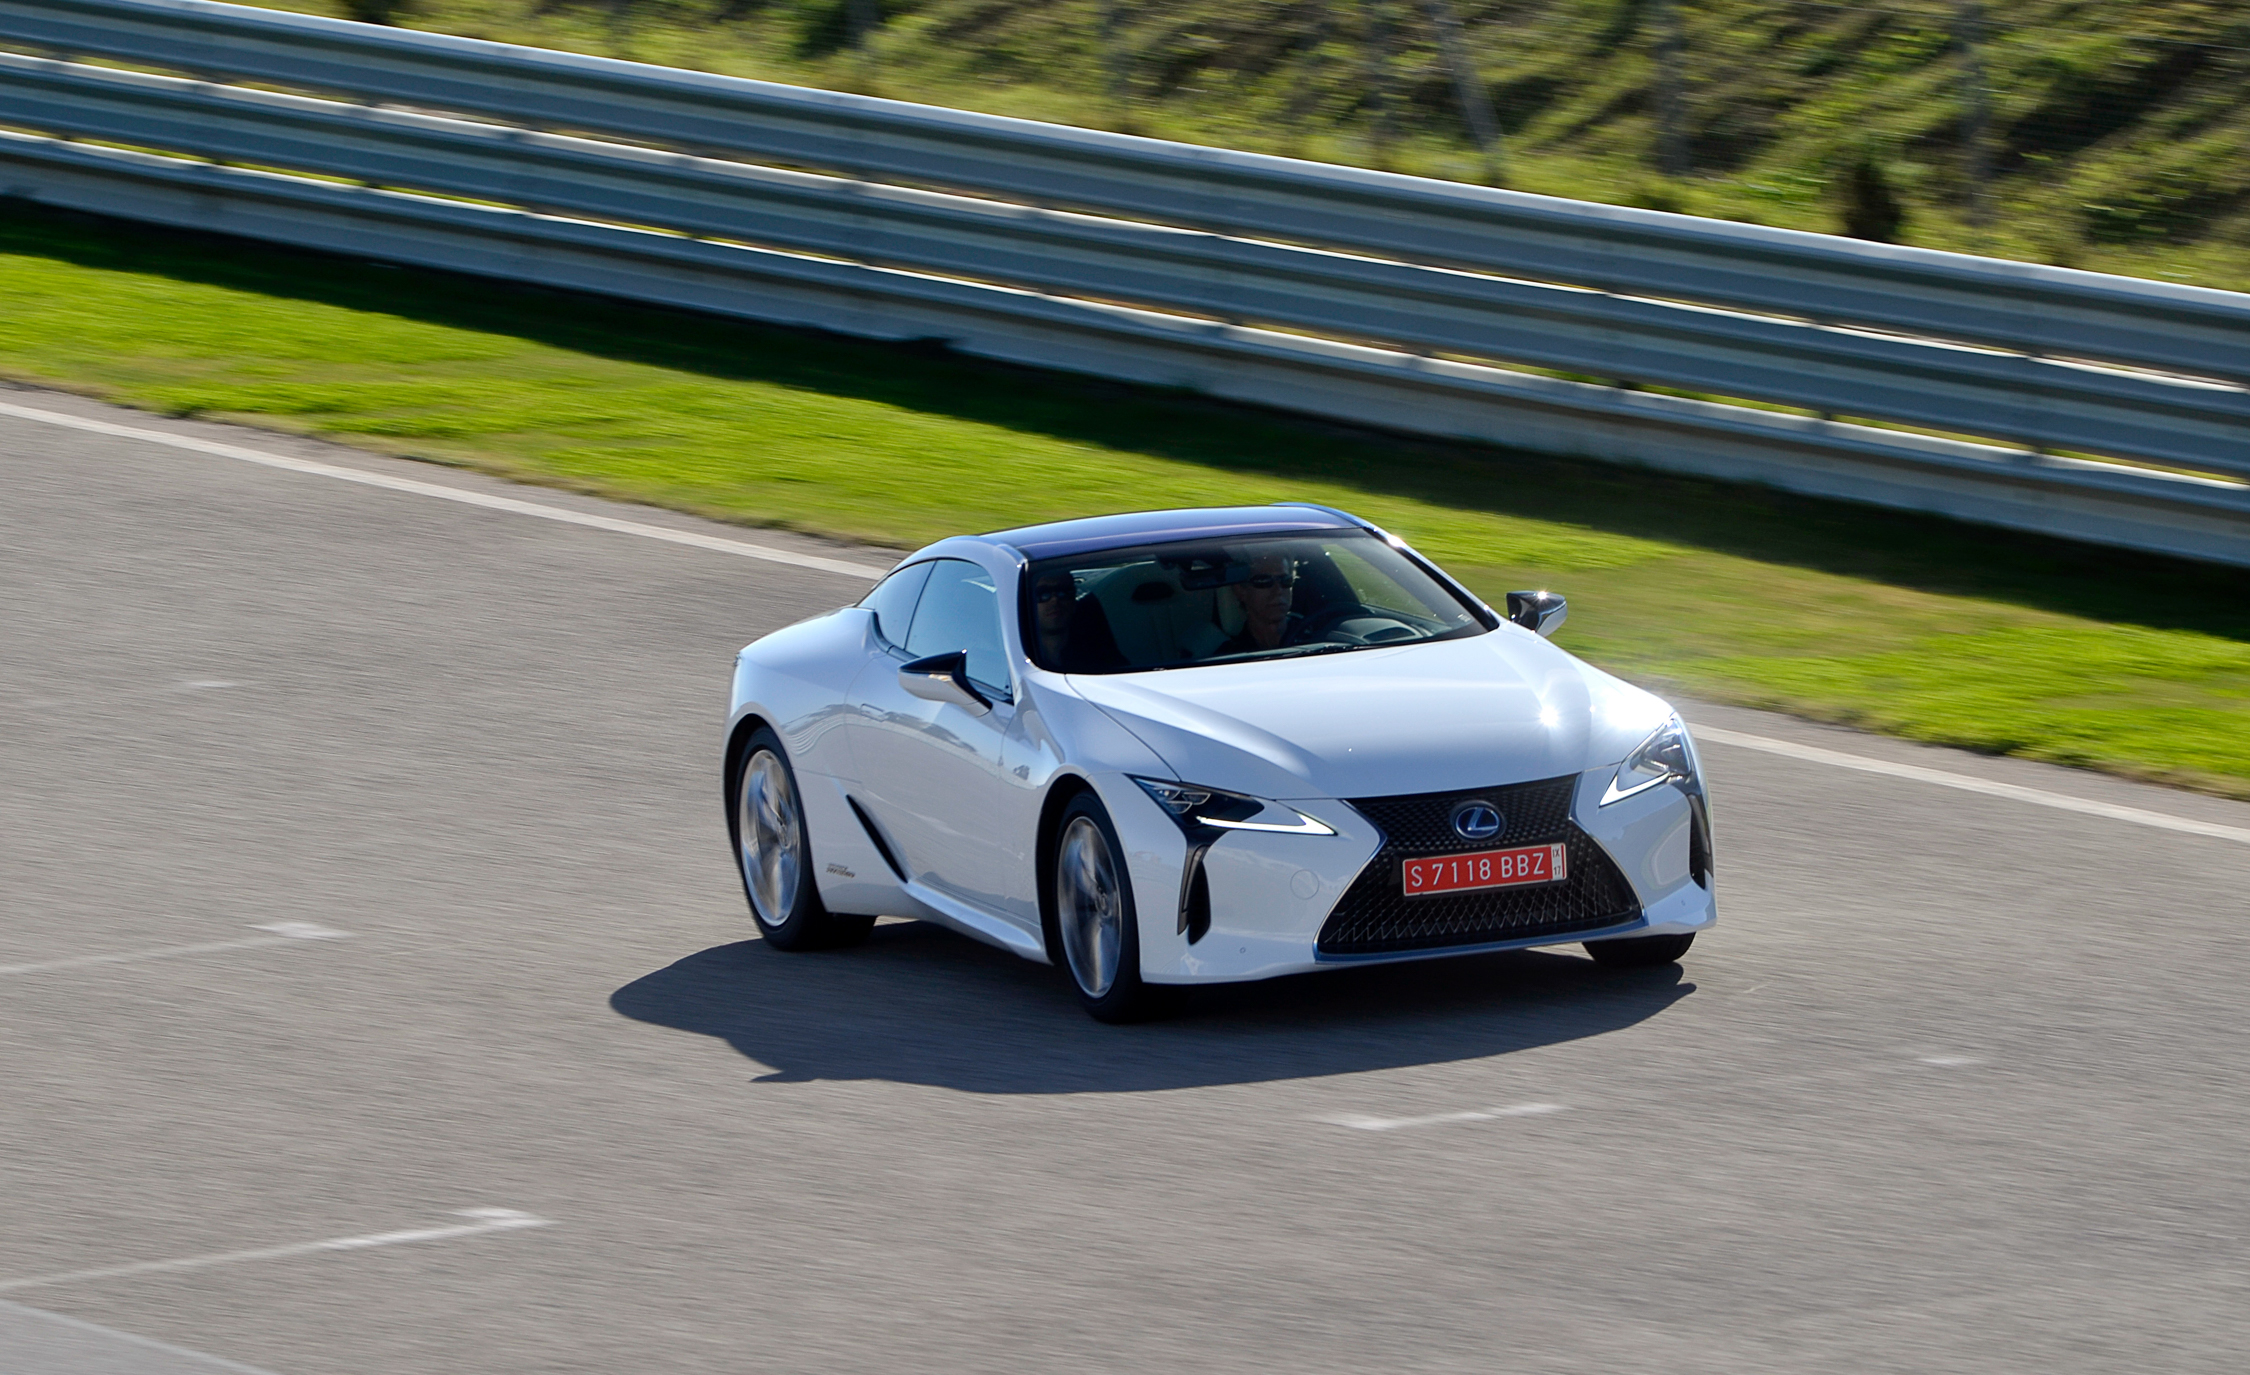 2018 Lexus Lc 500h White Test Drive Front And Side View (View 28 of 84)